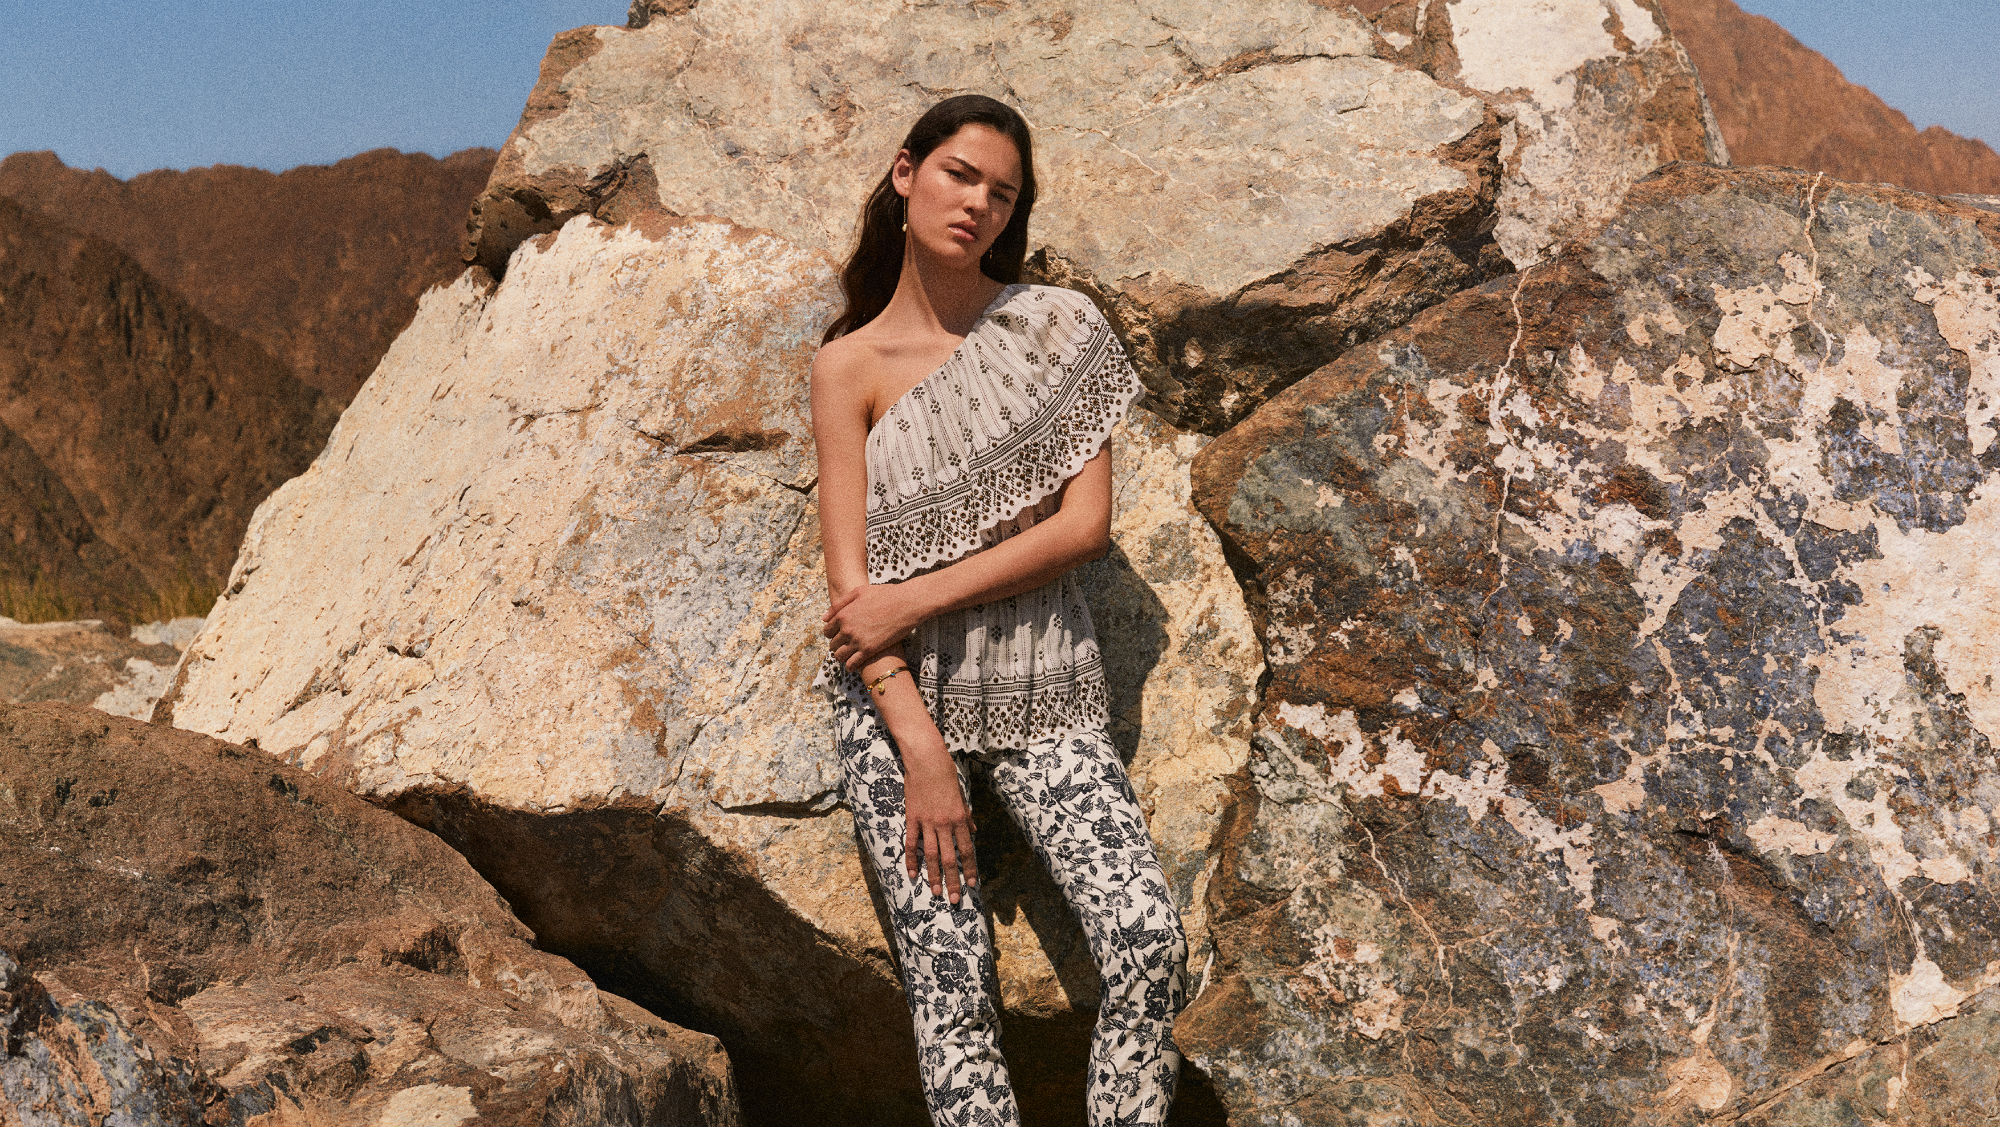 The exclusive Isabel Marant collection is available now at Net-a-Porter